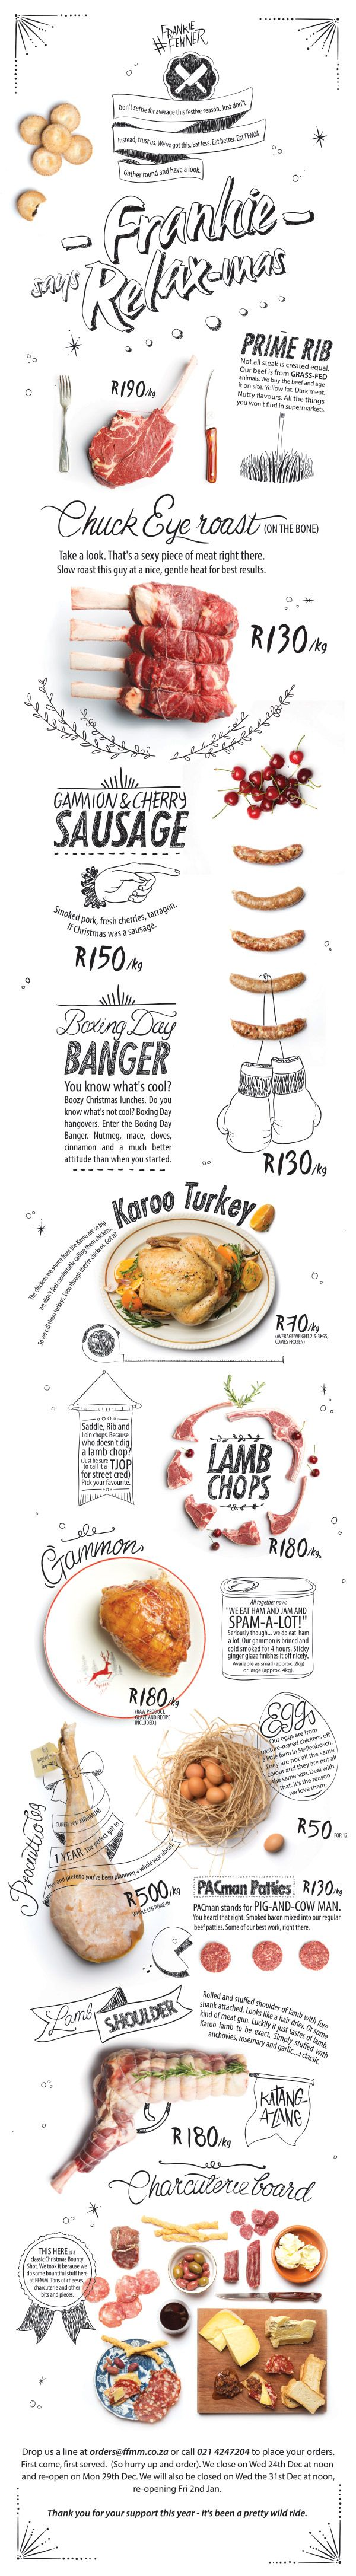 BEAUTIFUL INFOGRAPHICS - Frankie says Relax-mas Published by Maan Ali #foodinfographics #bestinfographics